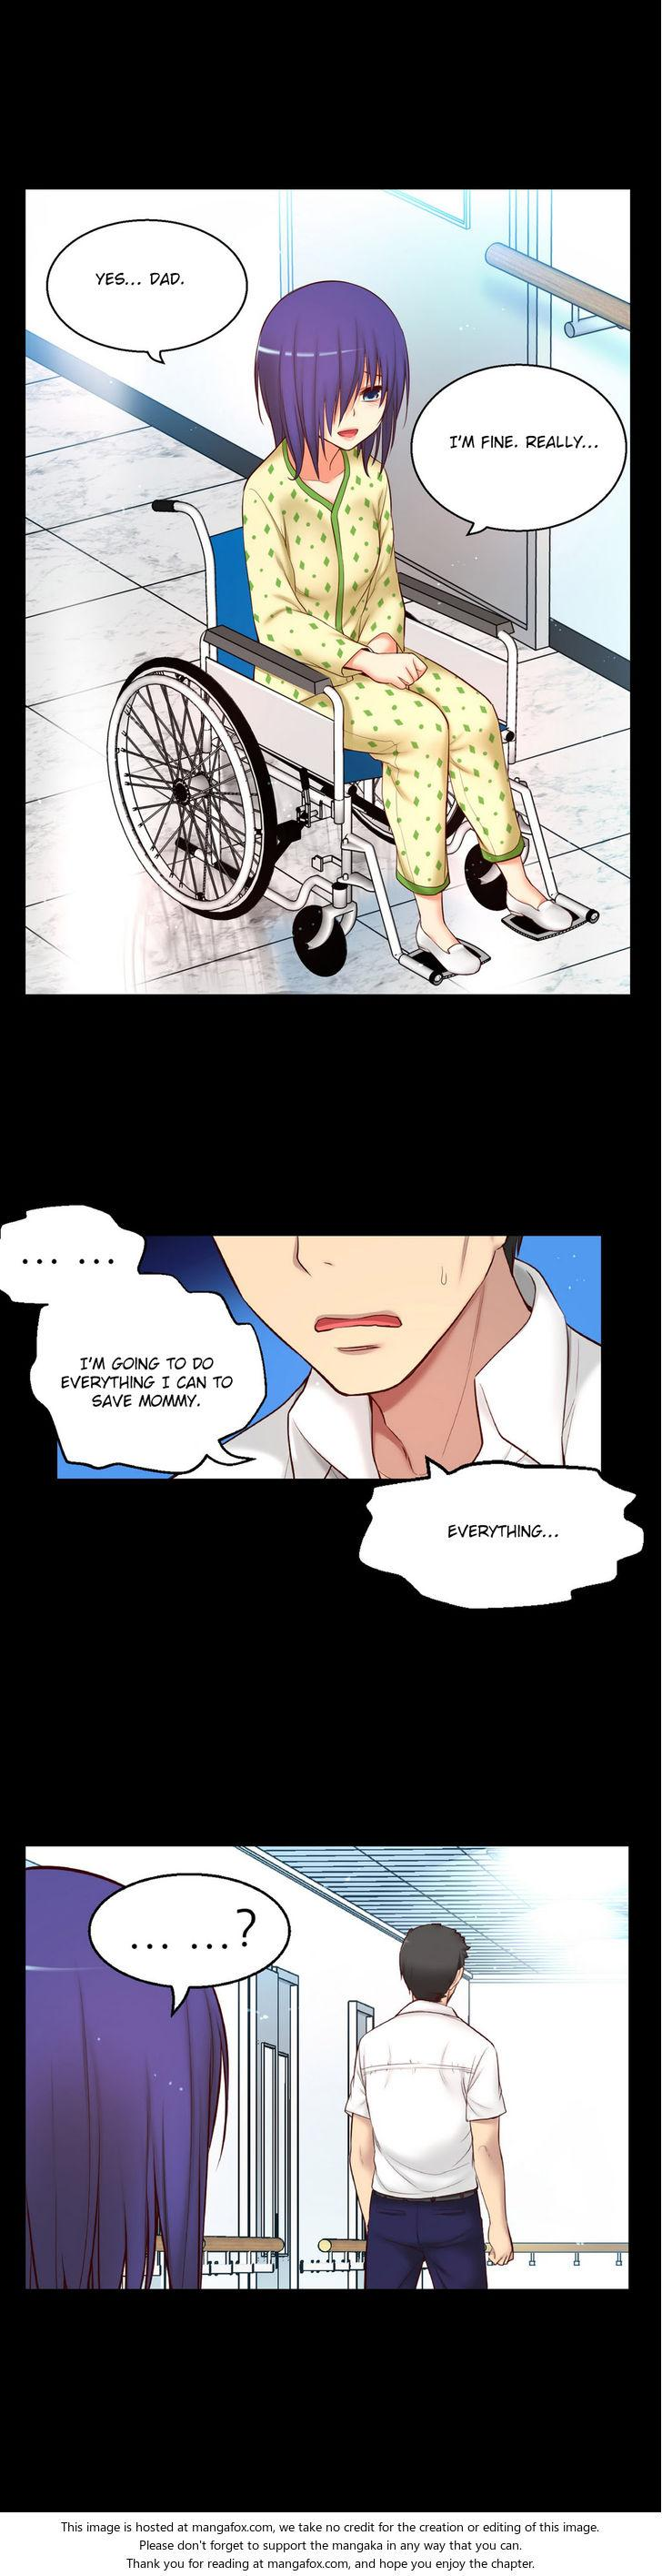 [Donggul Gom] She is Young (English) Part 1/2 1376